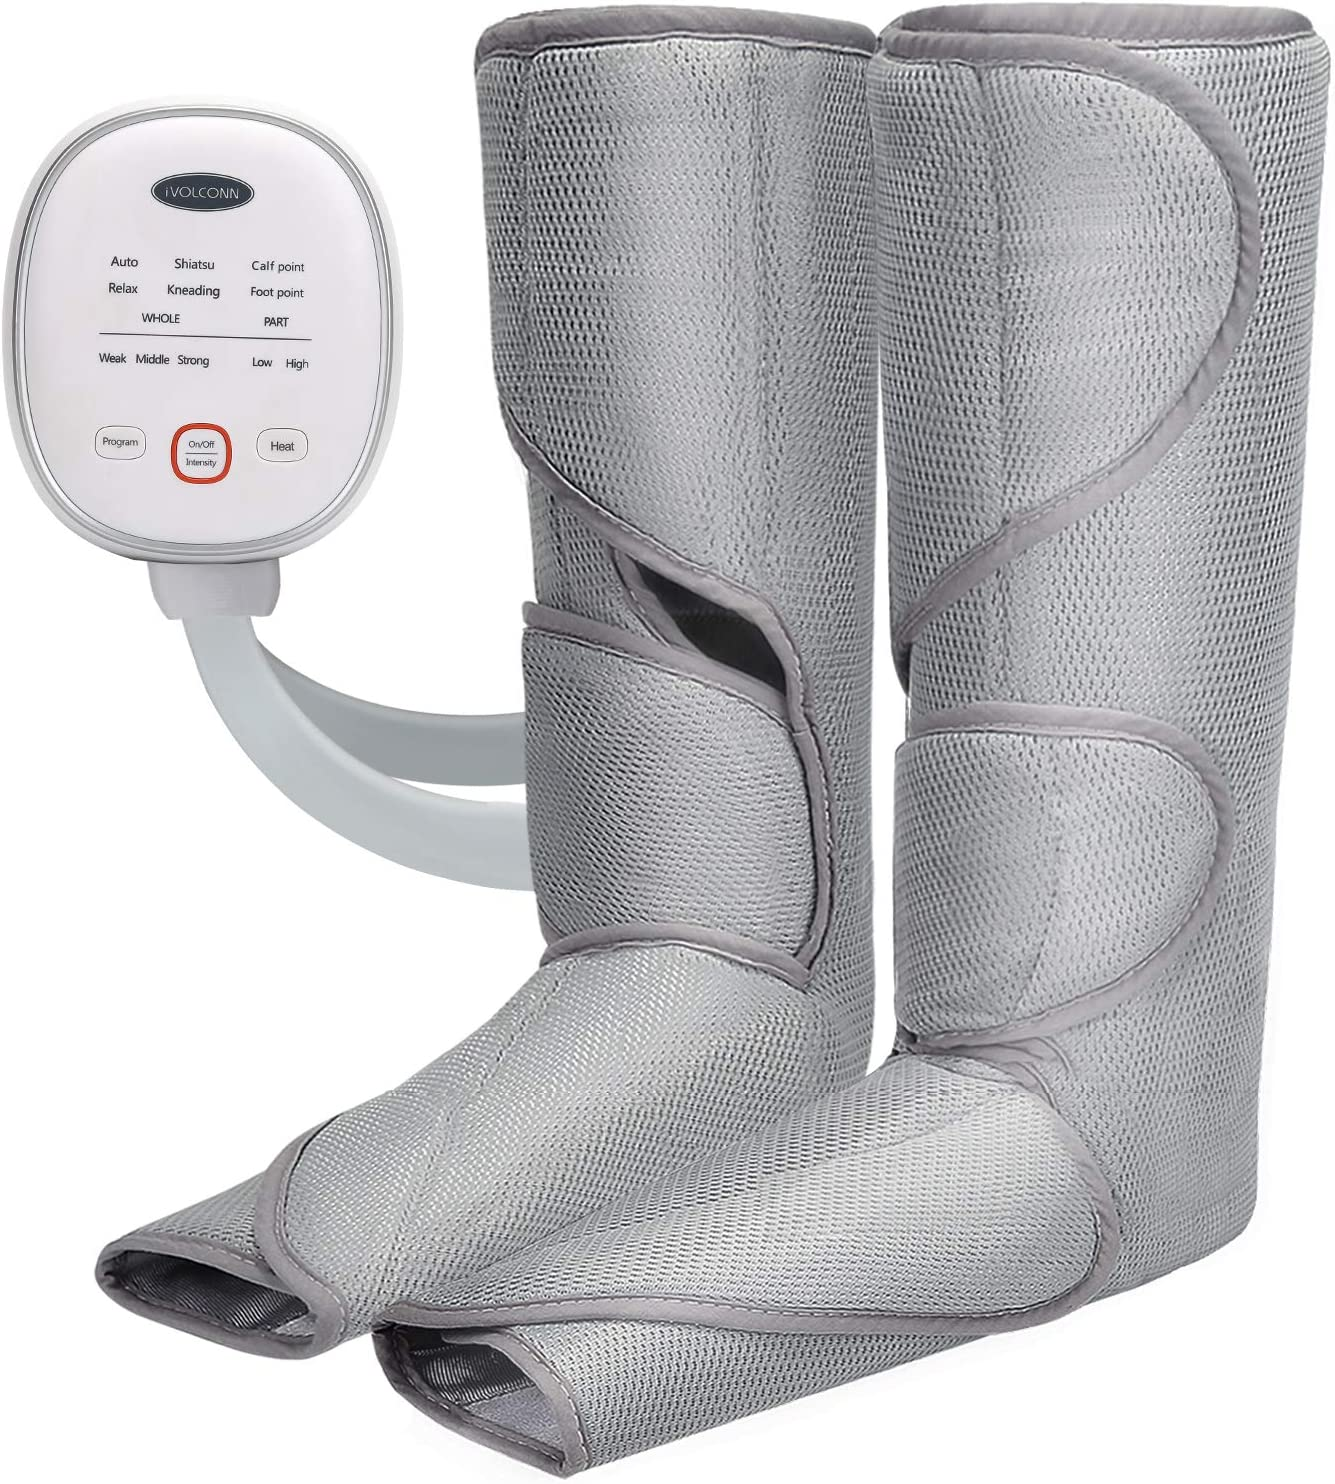 iVOLCONN Leg Massager with Heat for Circulation and Relaxation Foot Massager Air Compression Leg Wraps with Handheld Controller 3 Intensities and 6 Modes